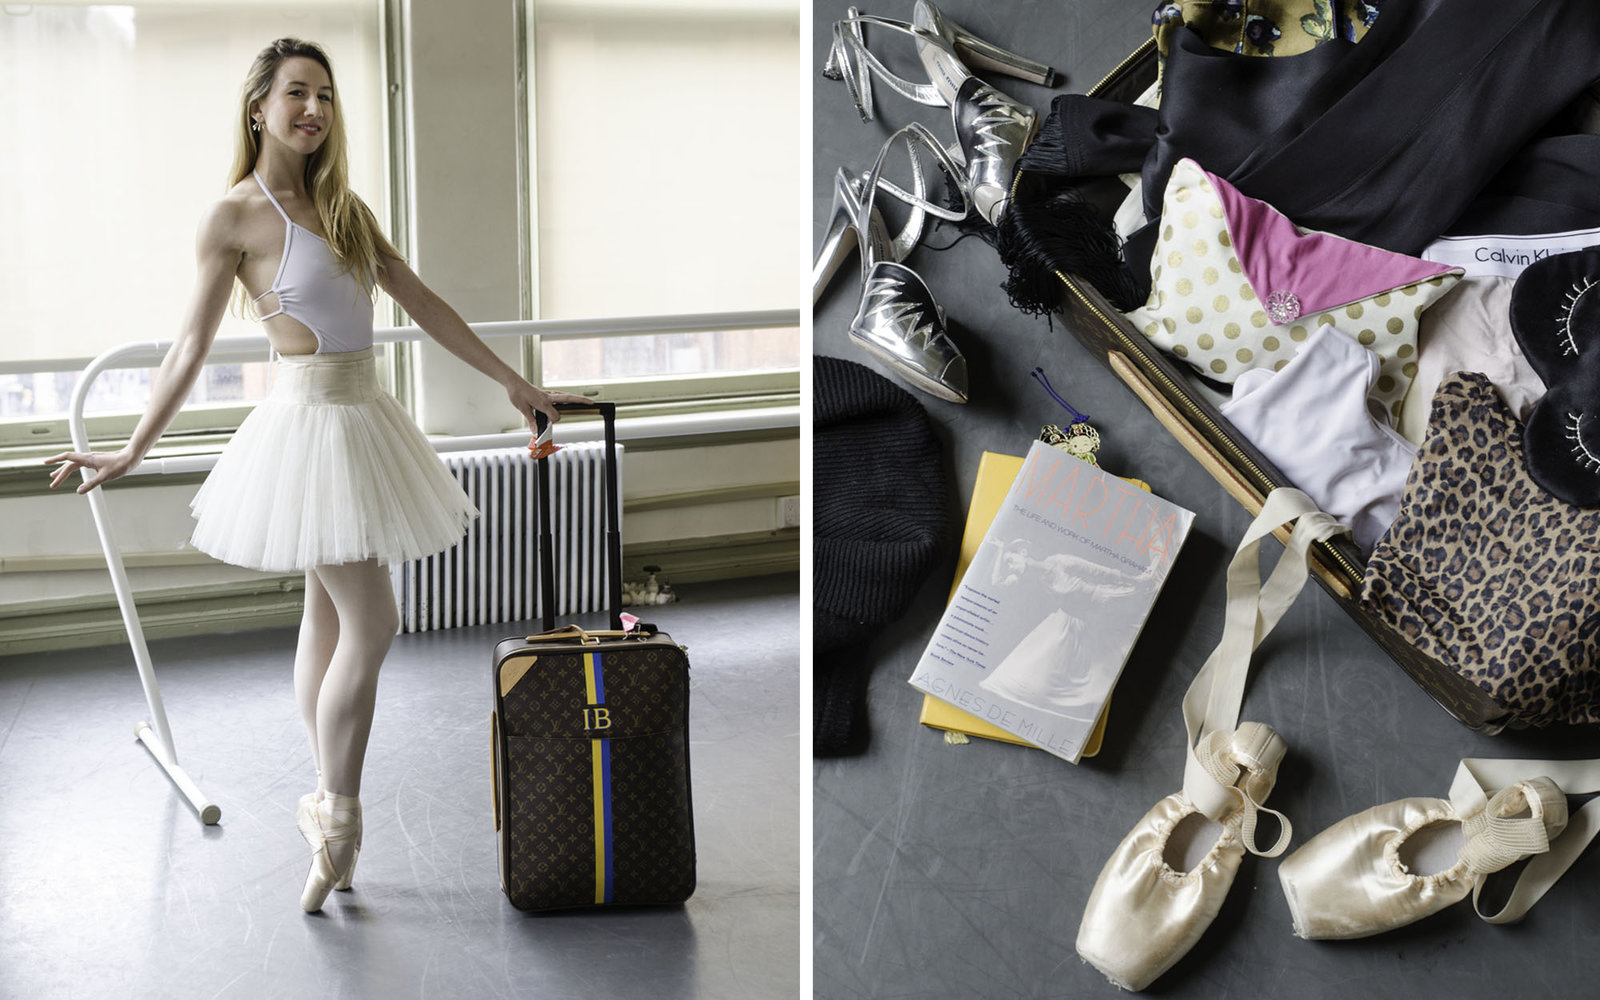 Travel Isabella Boylston Related Keywords Suggestions Travel